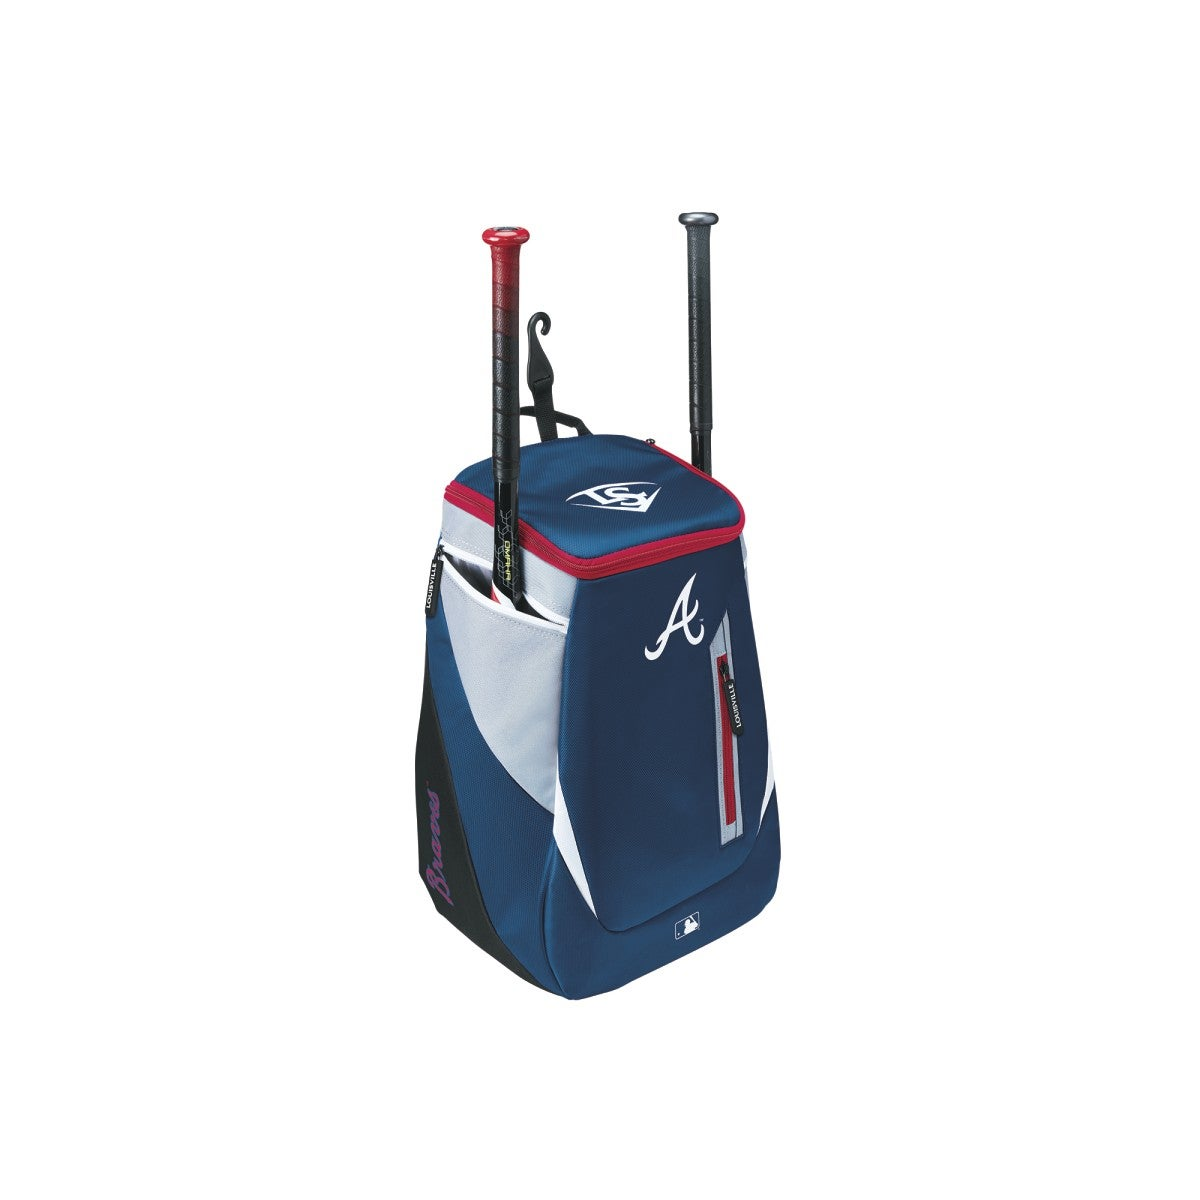 Genuine MLB Bag - Atlanta Braves